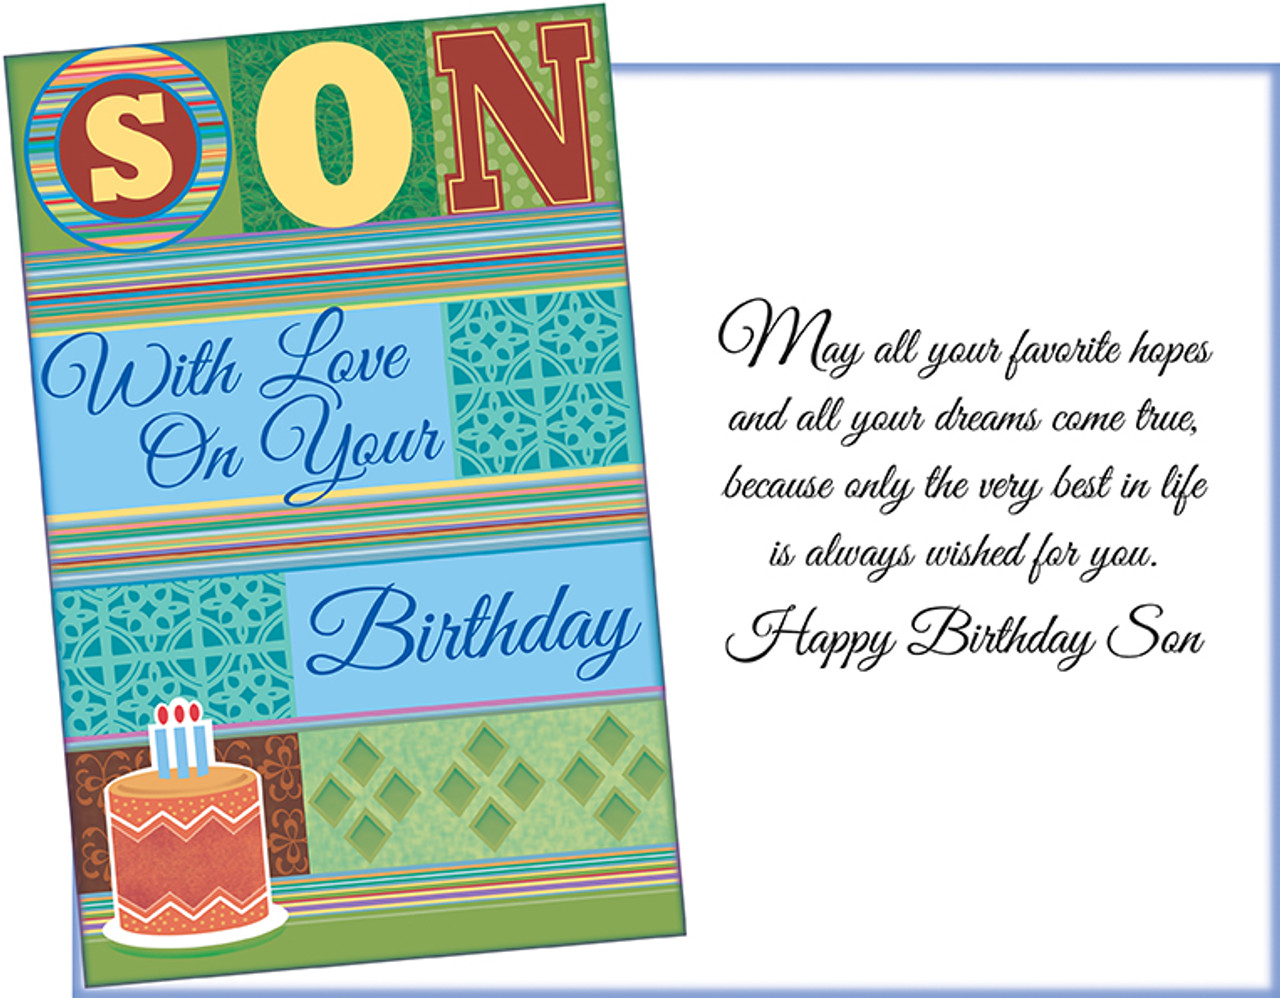 Wholesale Son Greeting Card Made In Chicago Stockwellgreetings